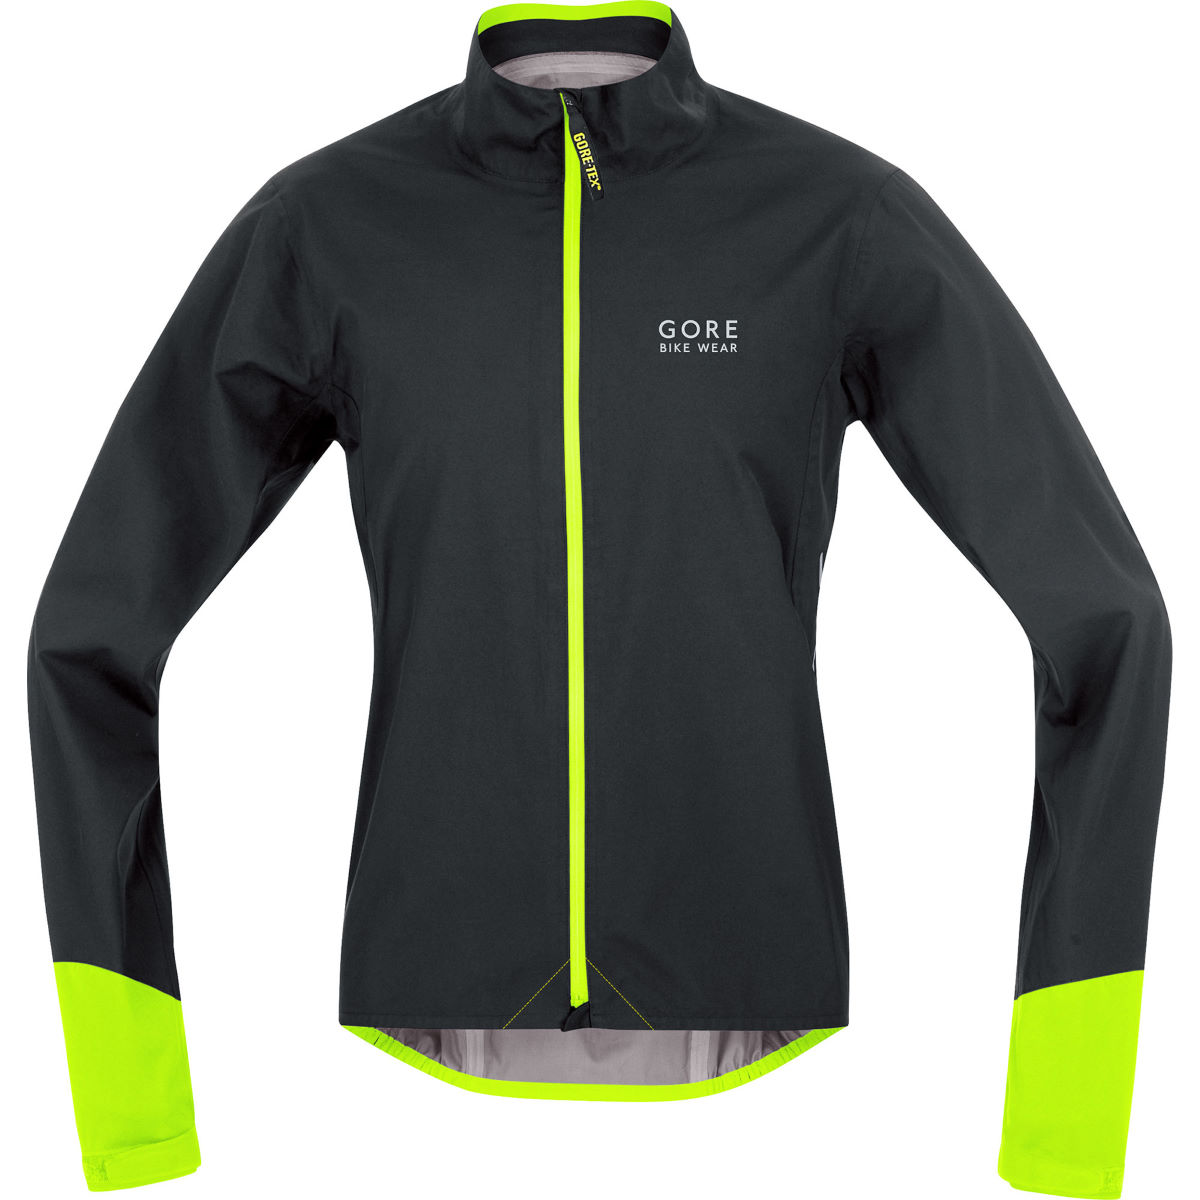 Veste Gore Bike Wear Power Gore-Tex Active - S Black/Neon Yellow Vestes imperméables vélo